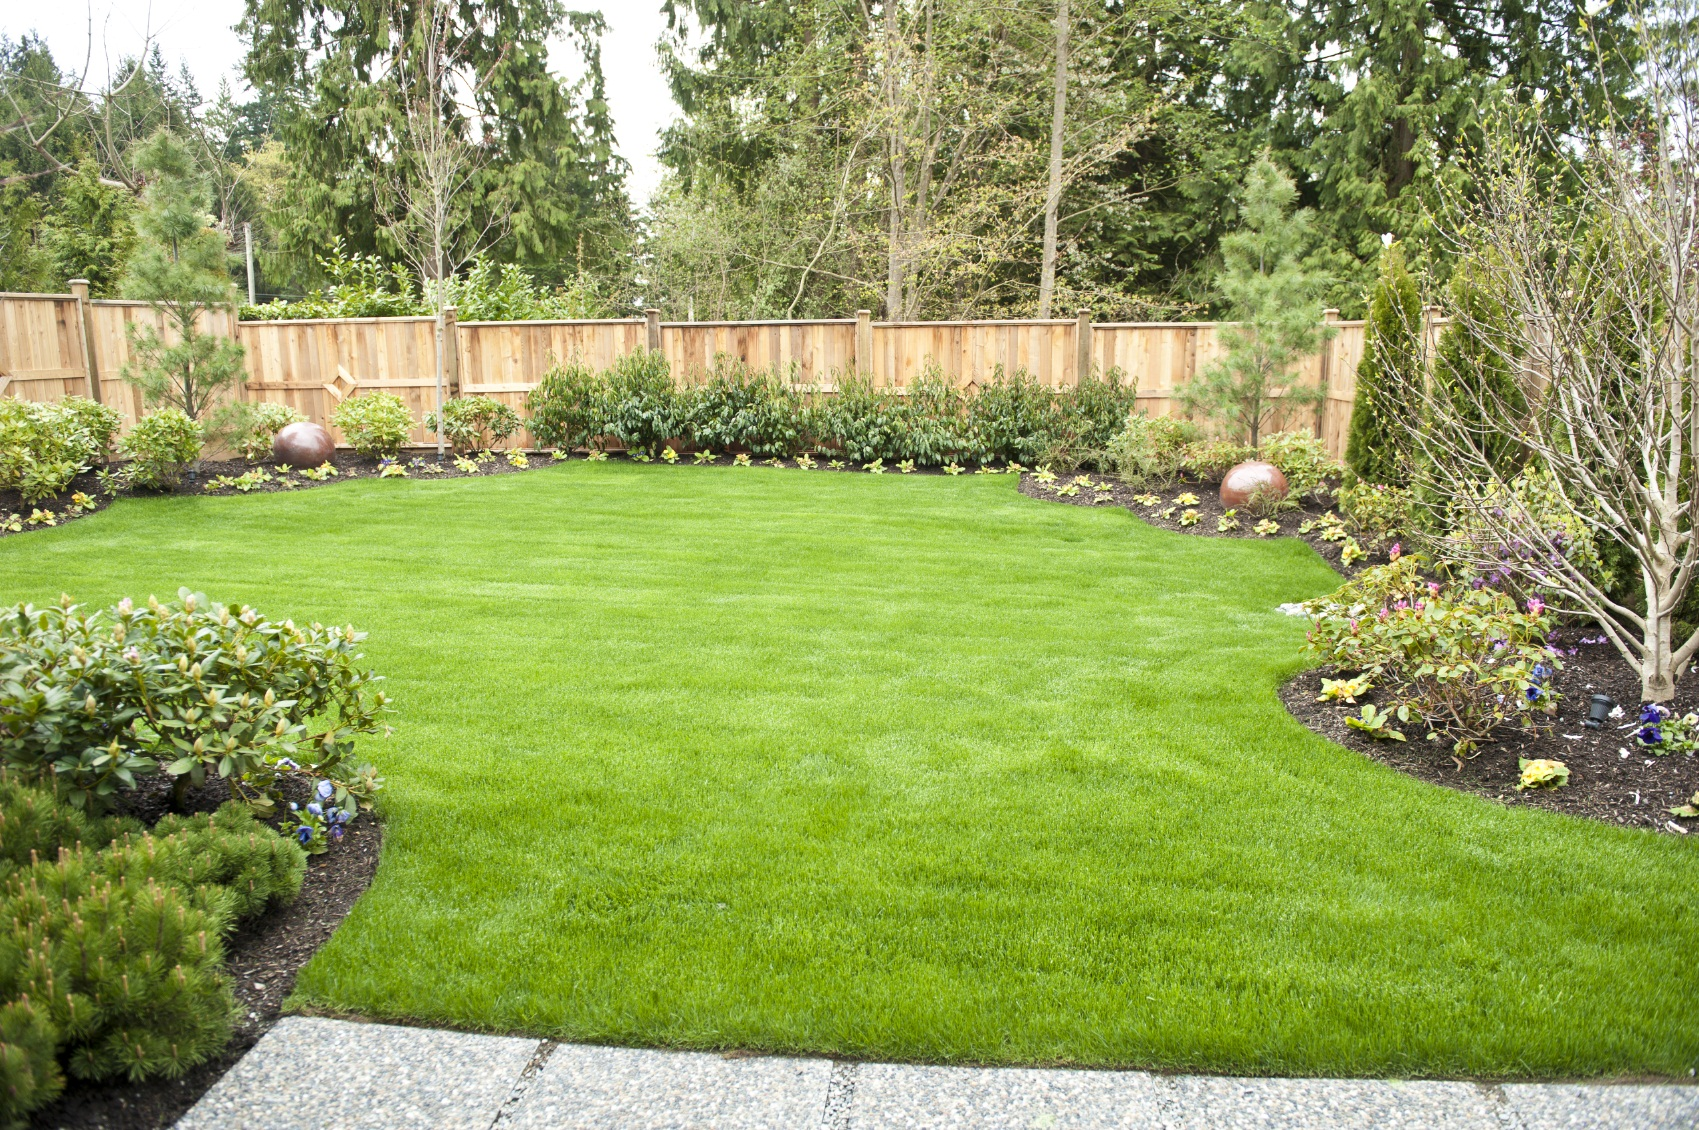 Backyard landscaping tips metamorphosis landscape design for Yard landscaping ideas